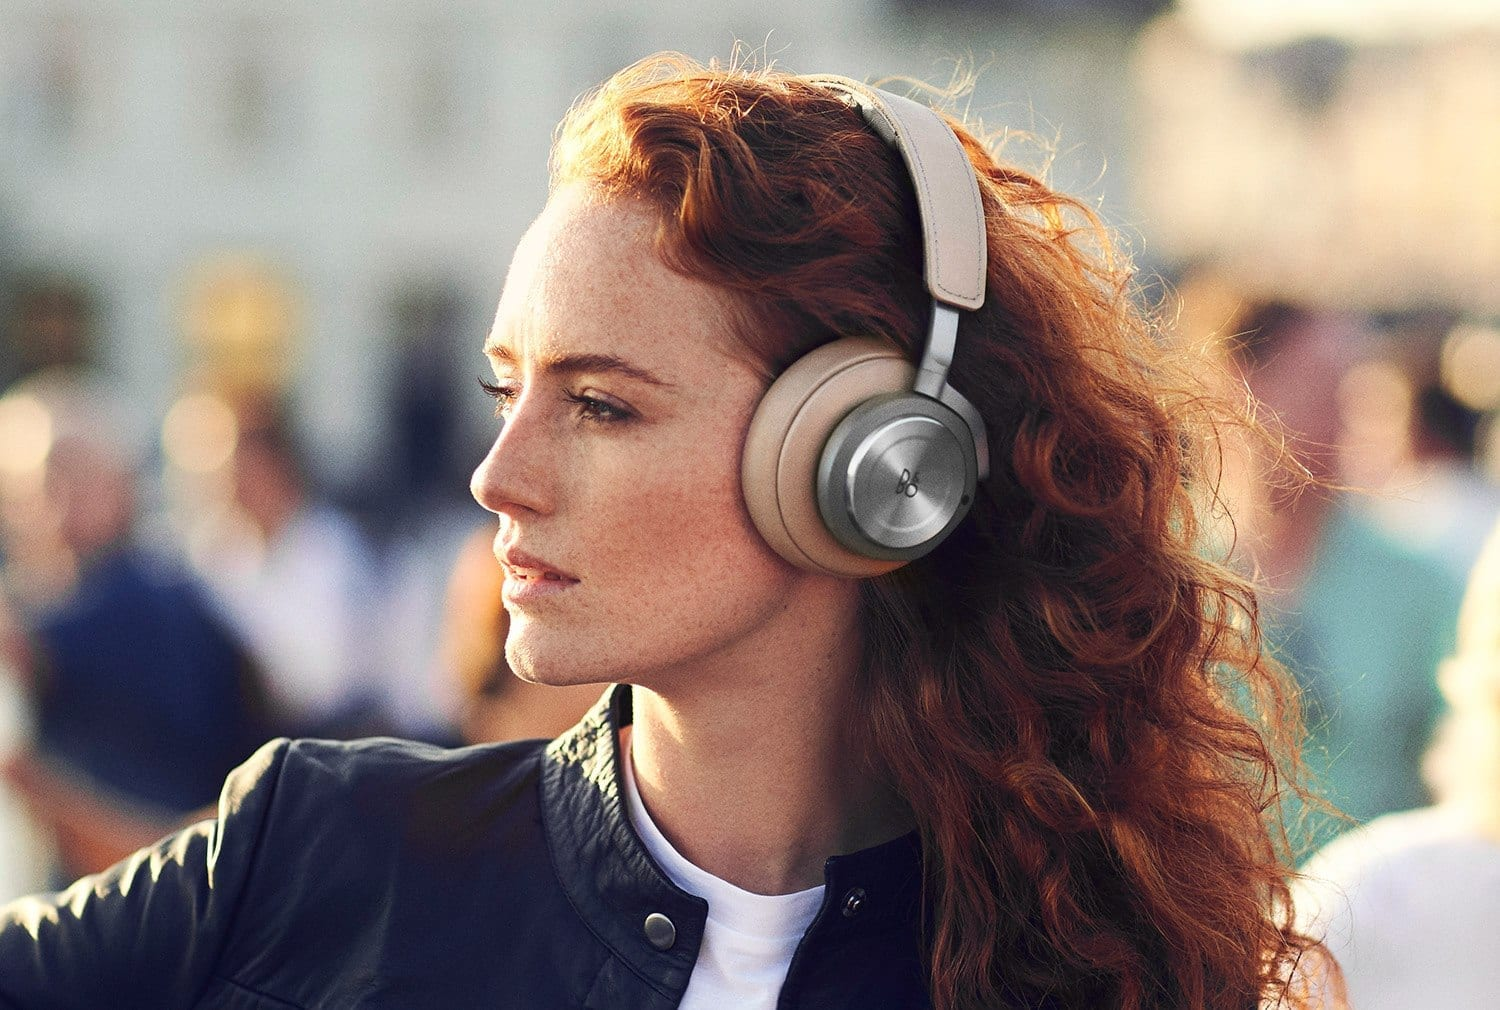 BO Most Expensive Headphone Brands - 20 Brands with Prices 2019